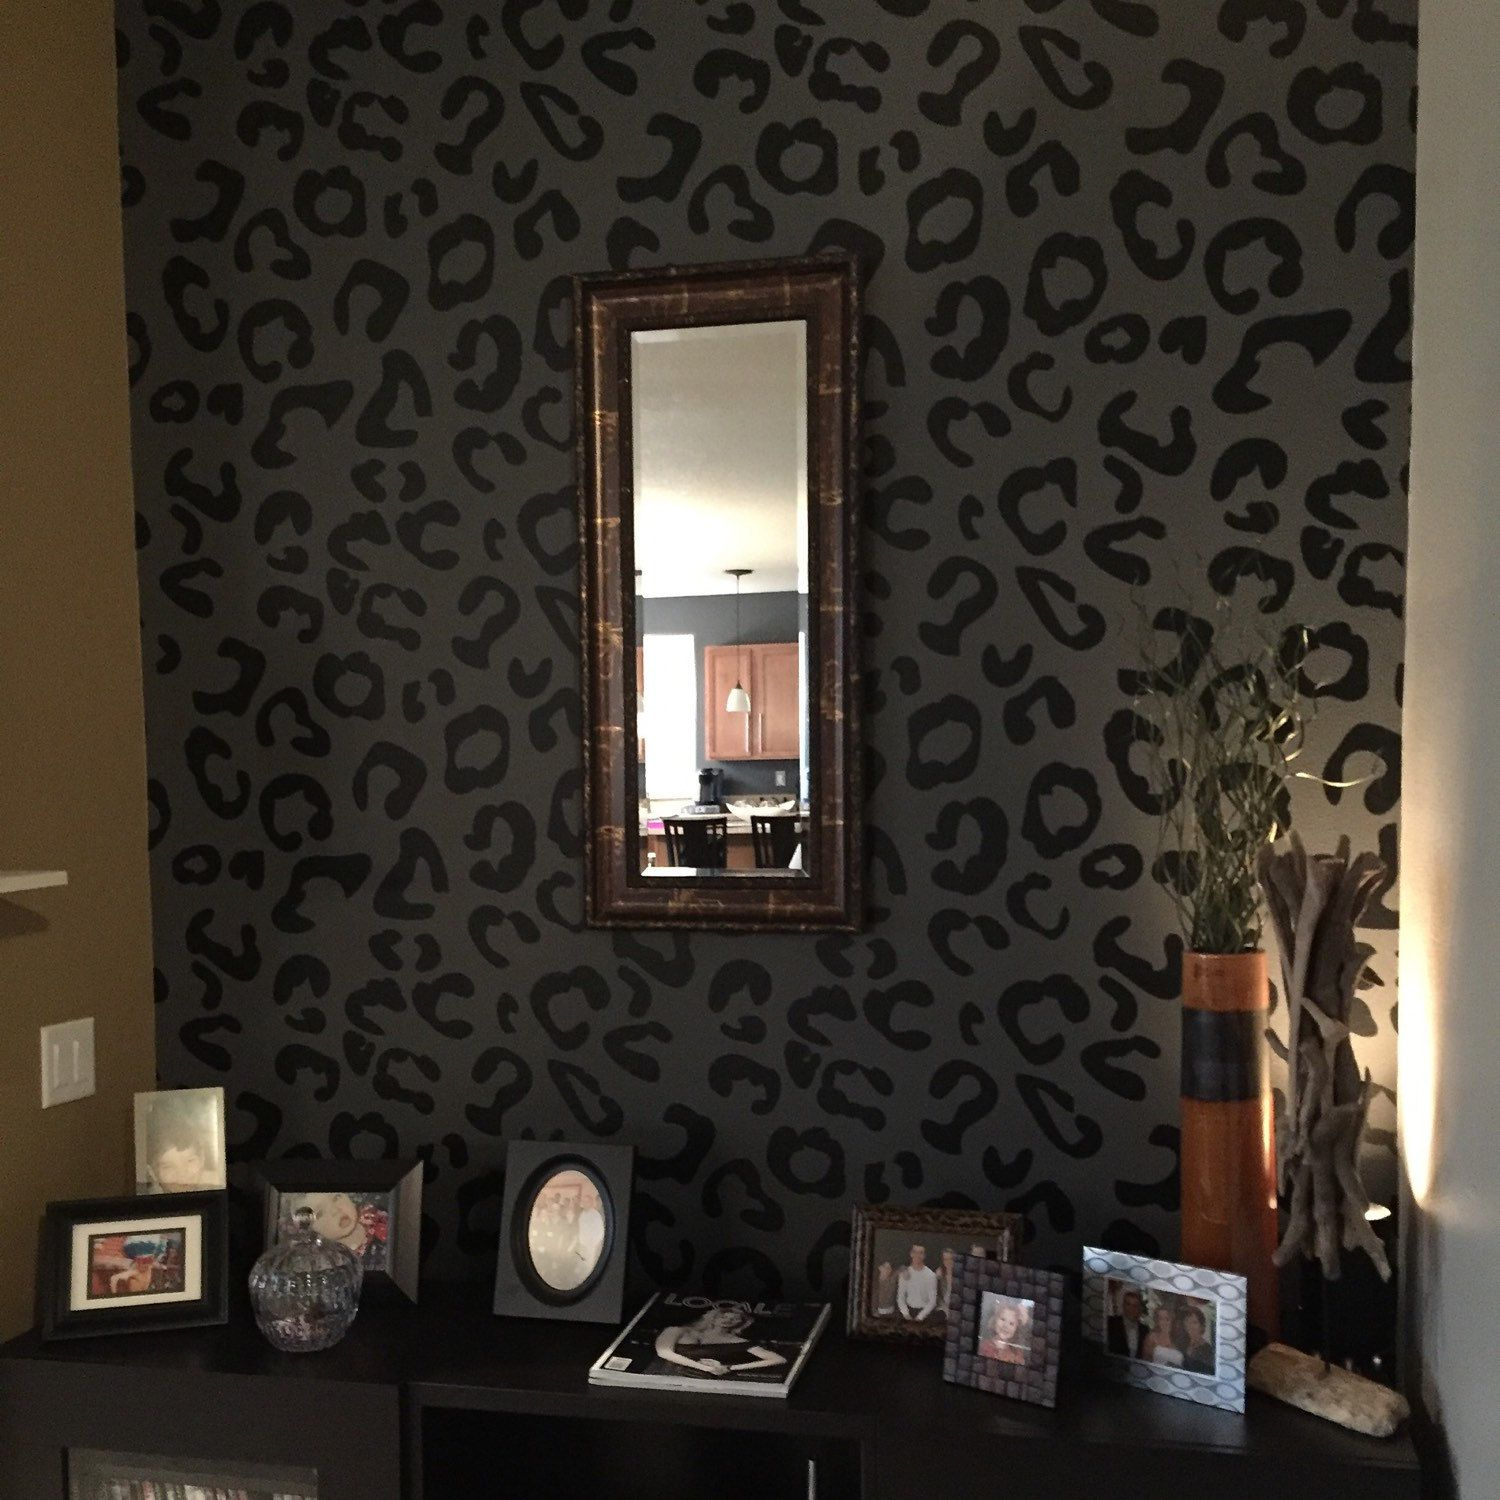 WallStarGraphics shared a new photo on Etsy  Accent wall bedroom